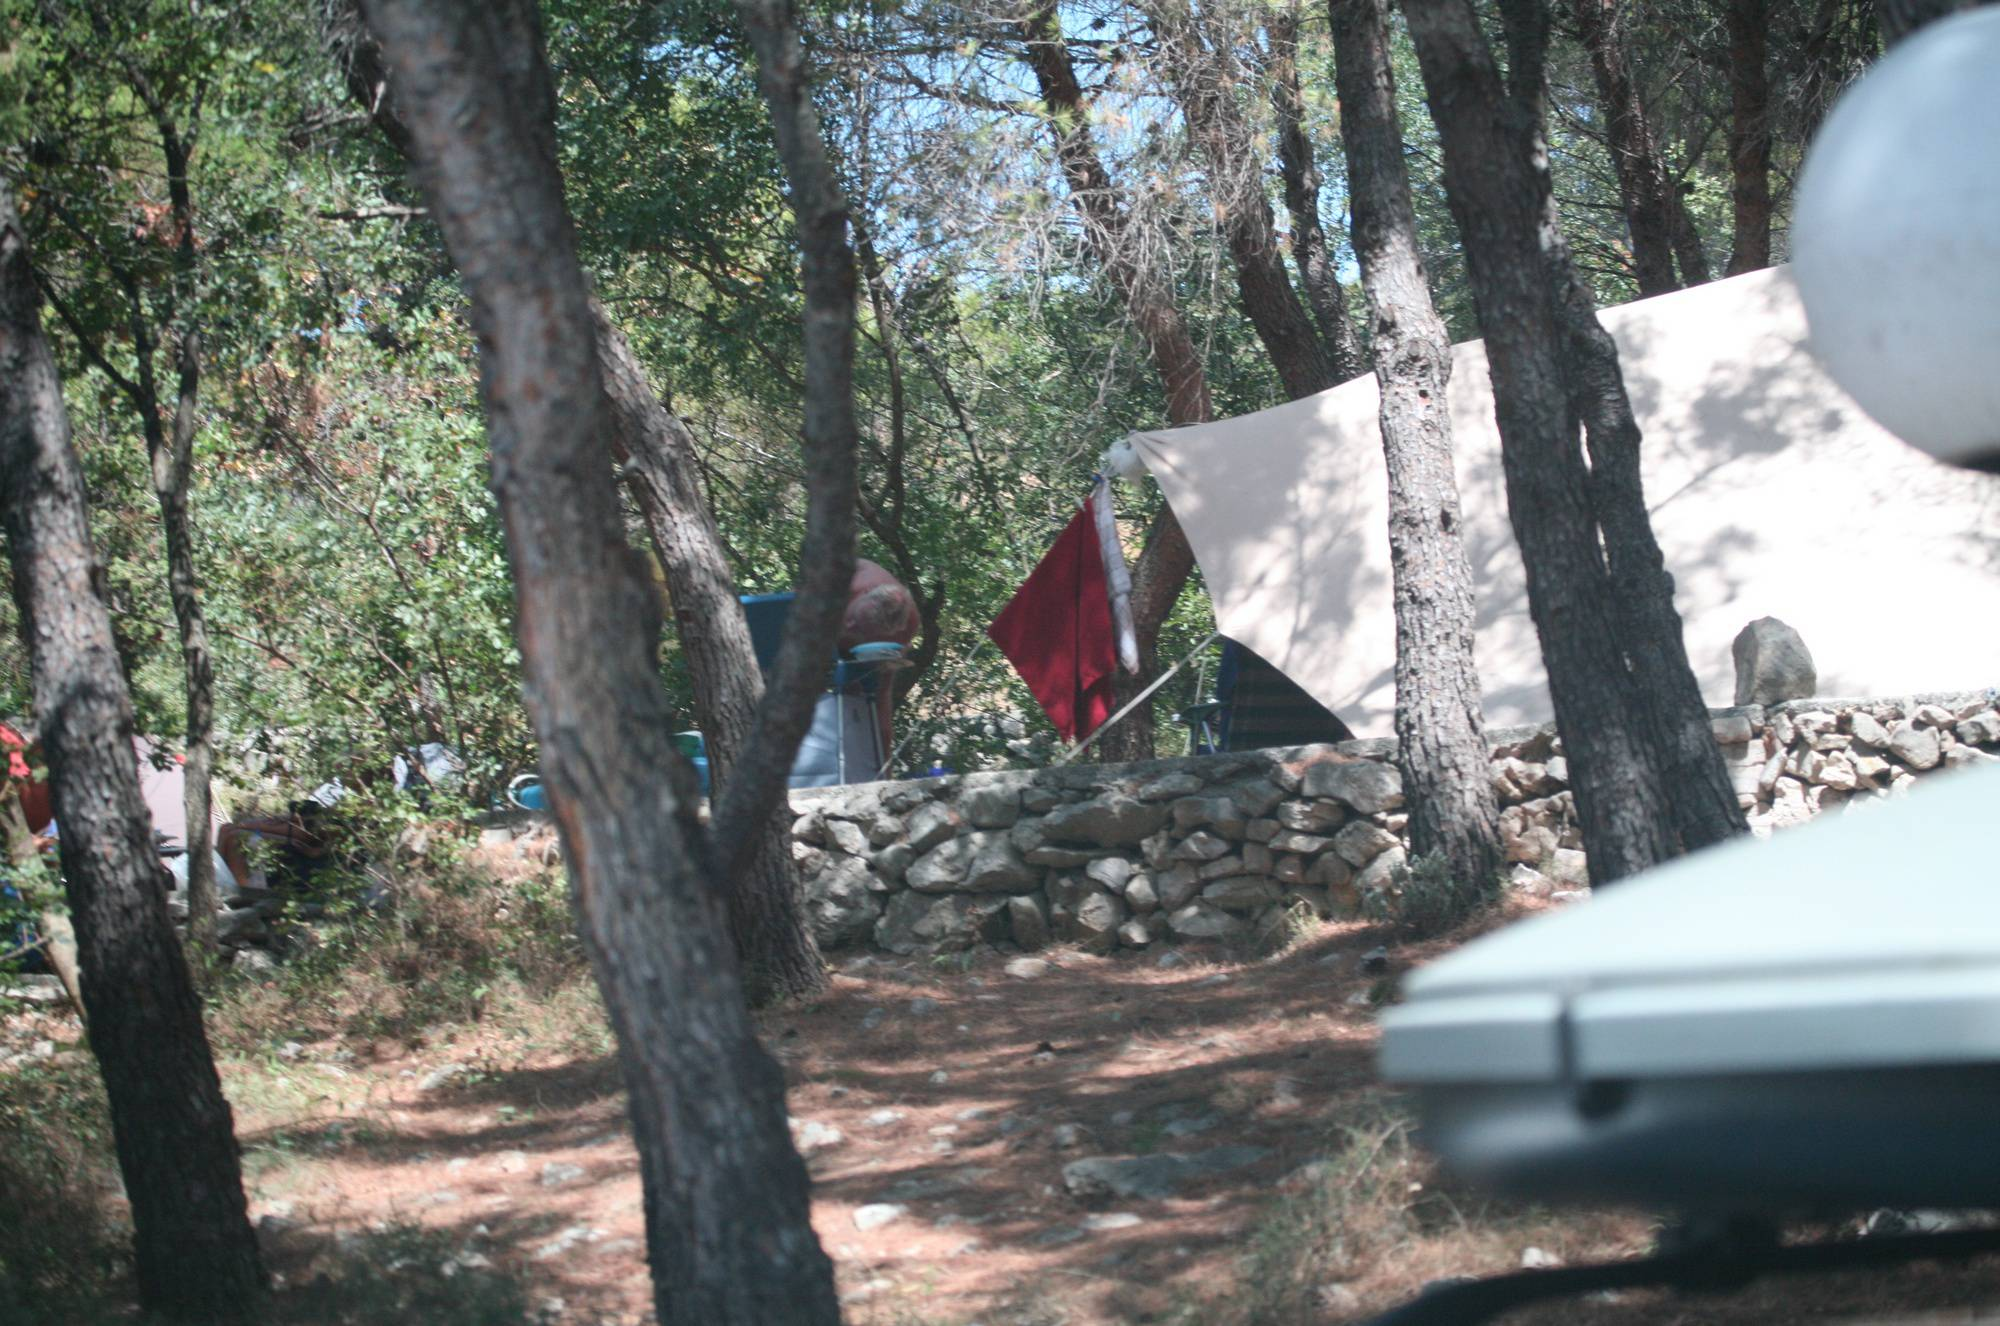 Pure Nudism Pics Bares Camping Scenery - 2